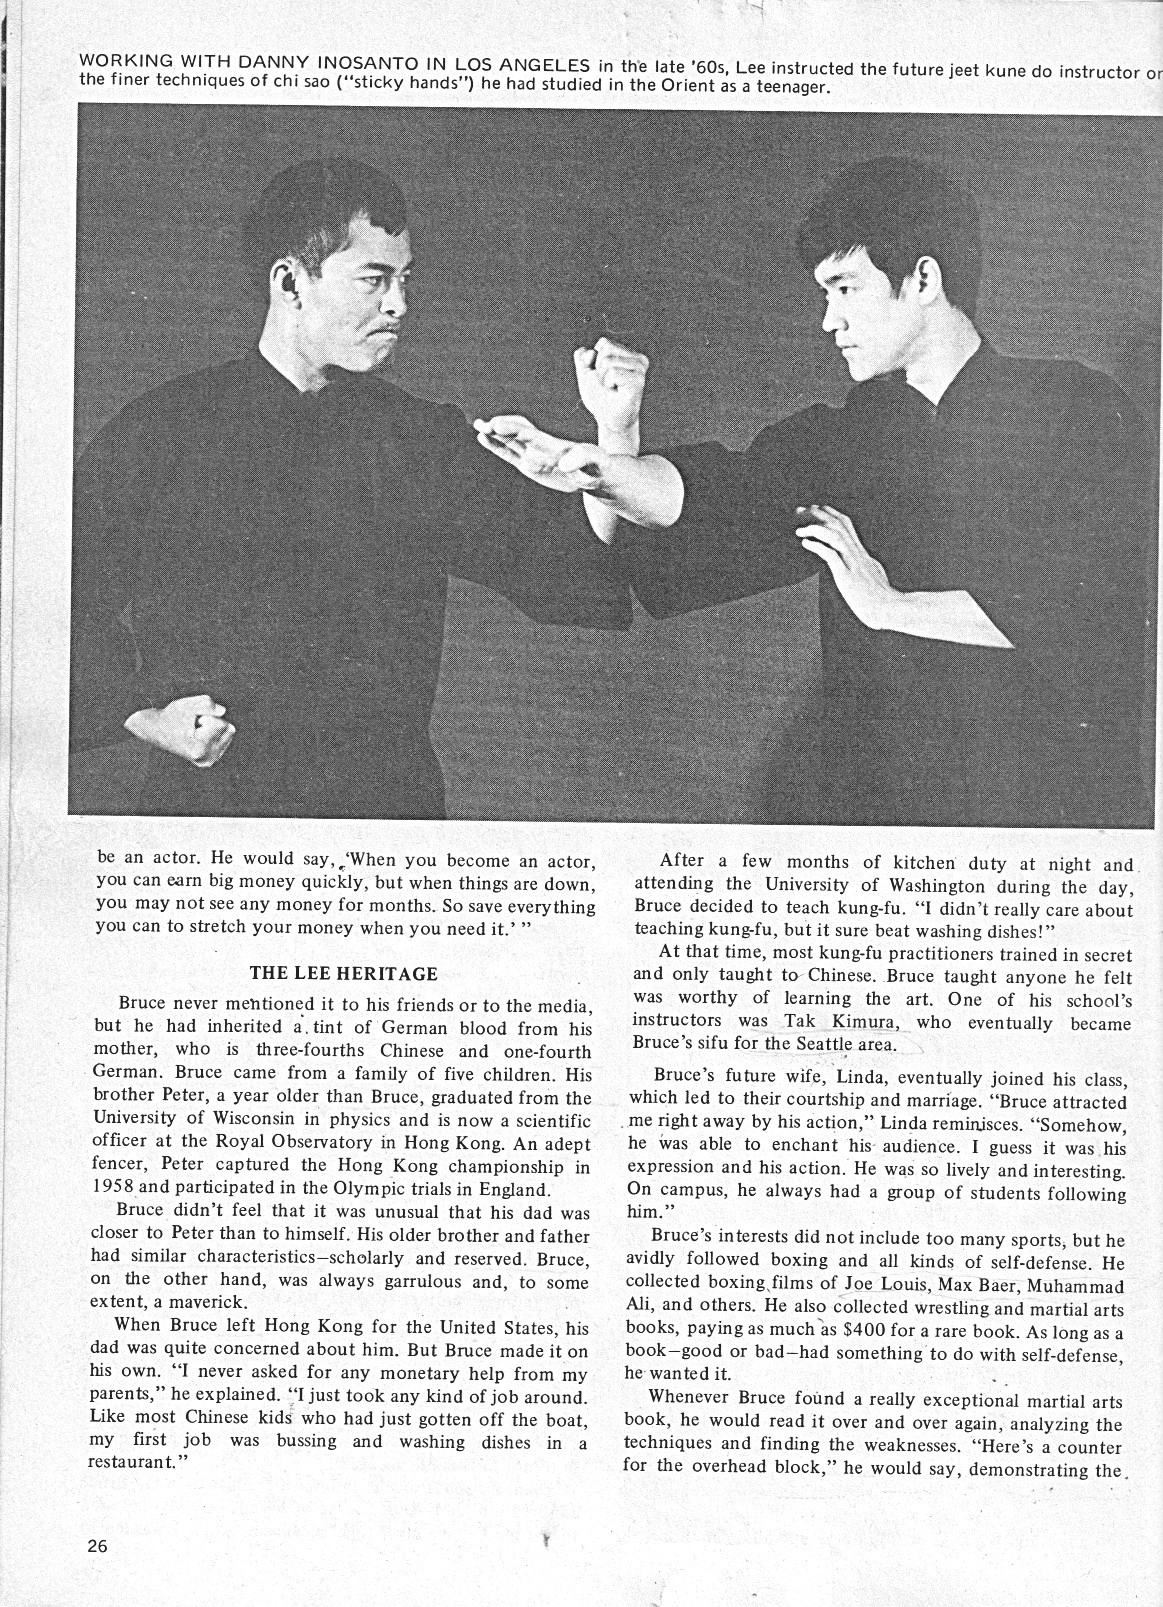 The Bruce Lee Heritage